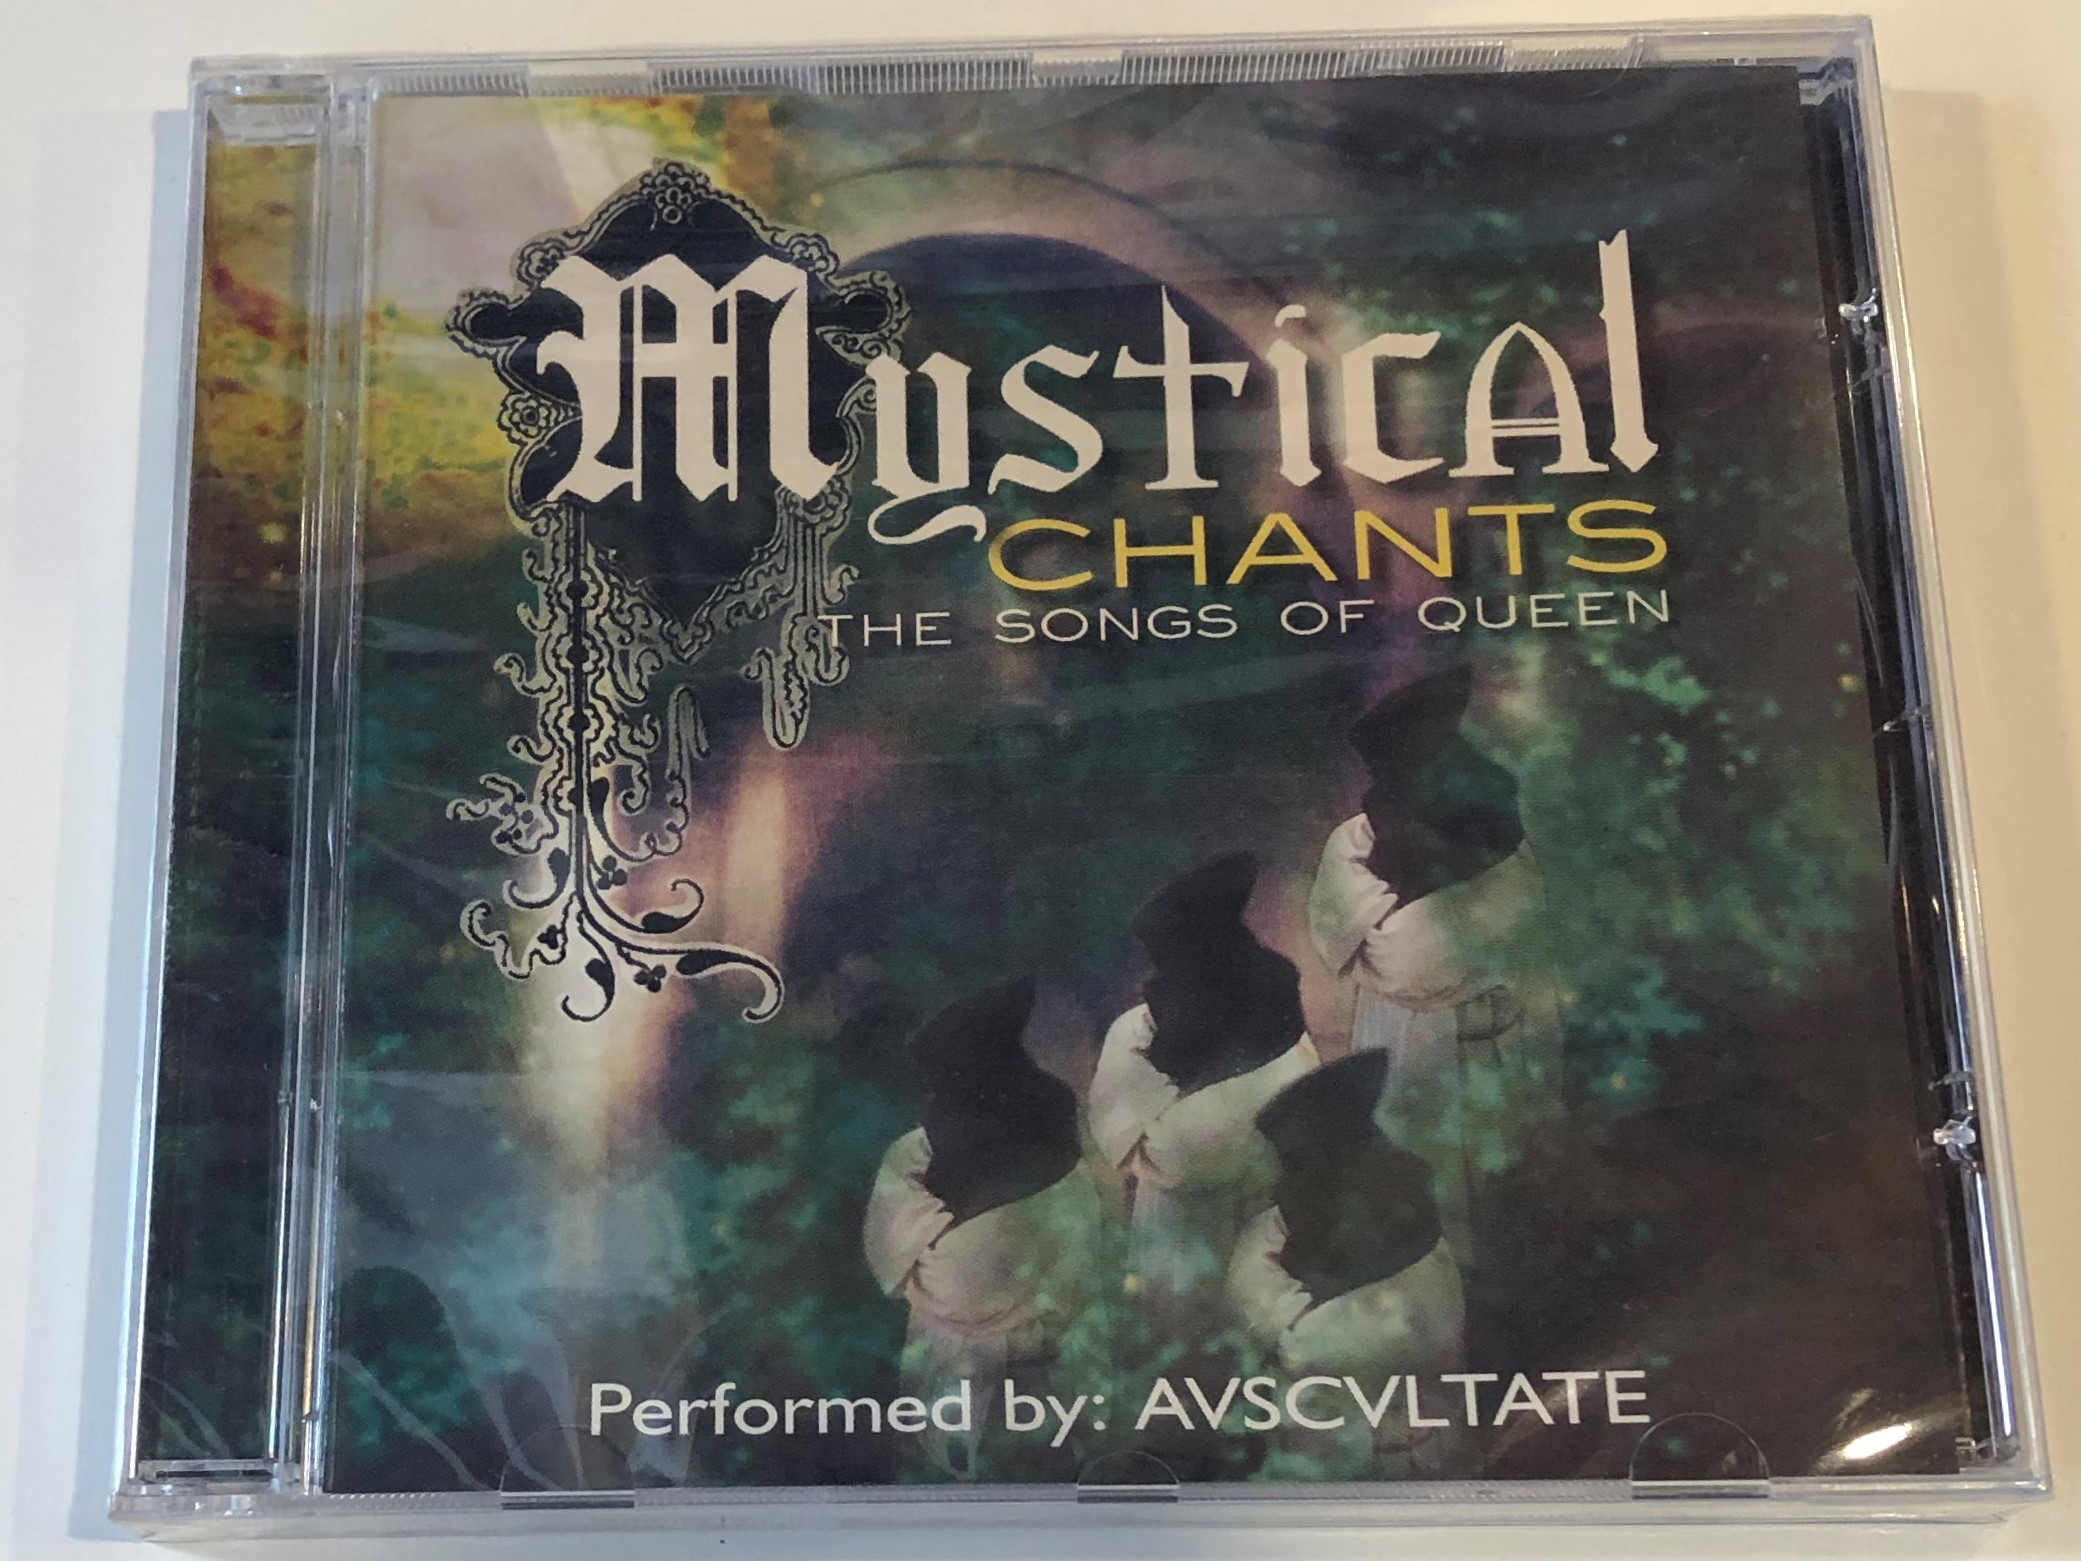 mystical-chants-the-songs-of-queen-performed-by-avscvltate-elap-audio-cd-2001-5706238309360-1-.jpg